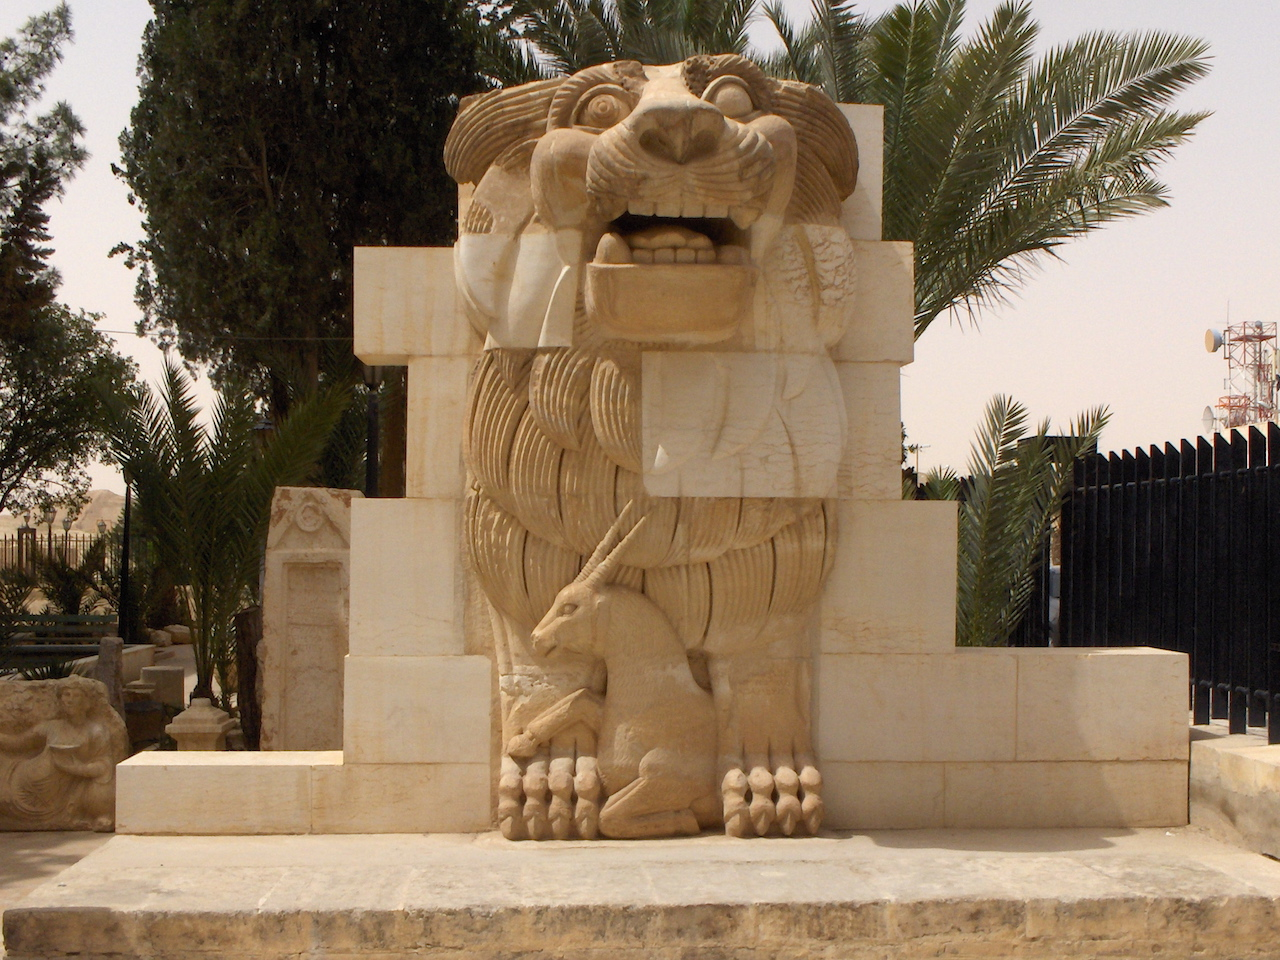 A lion sculpture dating from the first century BCE that was once part of the Temple of Allat, now on view at the Palmyra Archaeological Museum (photo by Mappo/Wikimedia Commons)